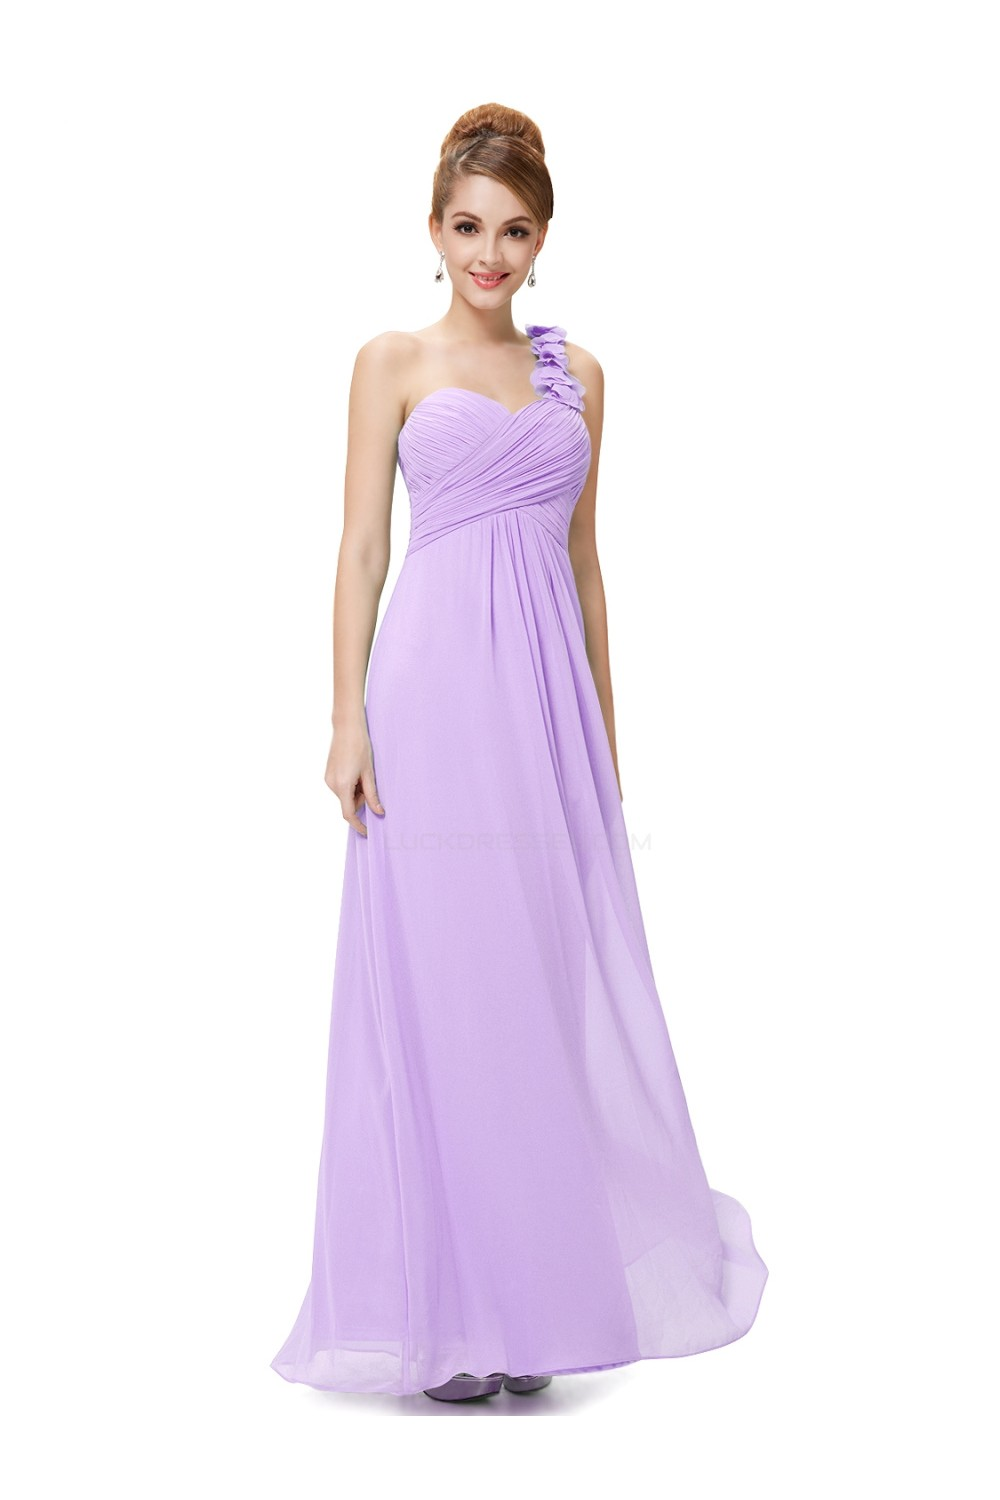 Line one shoulder sweetheart long lilac chiffon bridesmaid dresses a line one shoulder sweetheart long lilac chiffon bridesmaid dressesevening dresses bd010288 ombrellifo Gallery